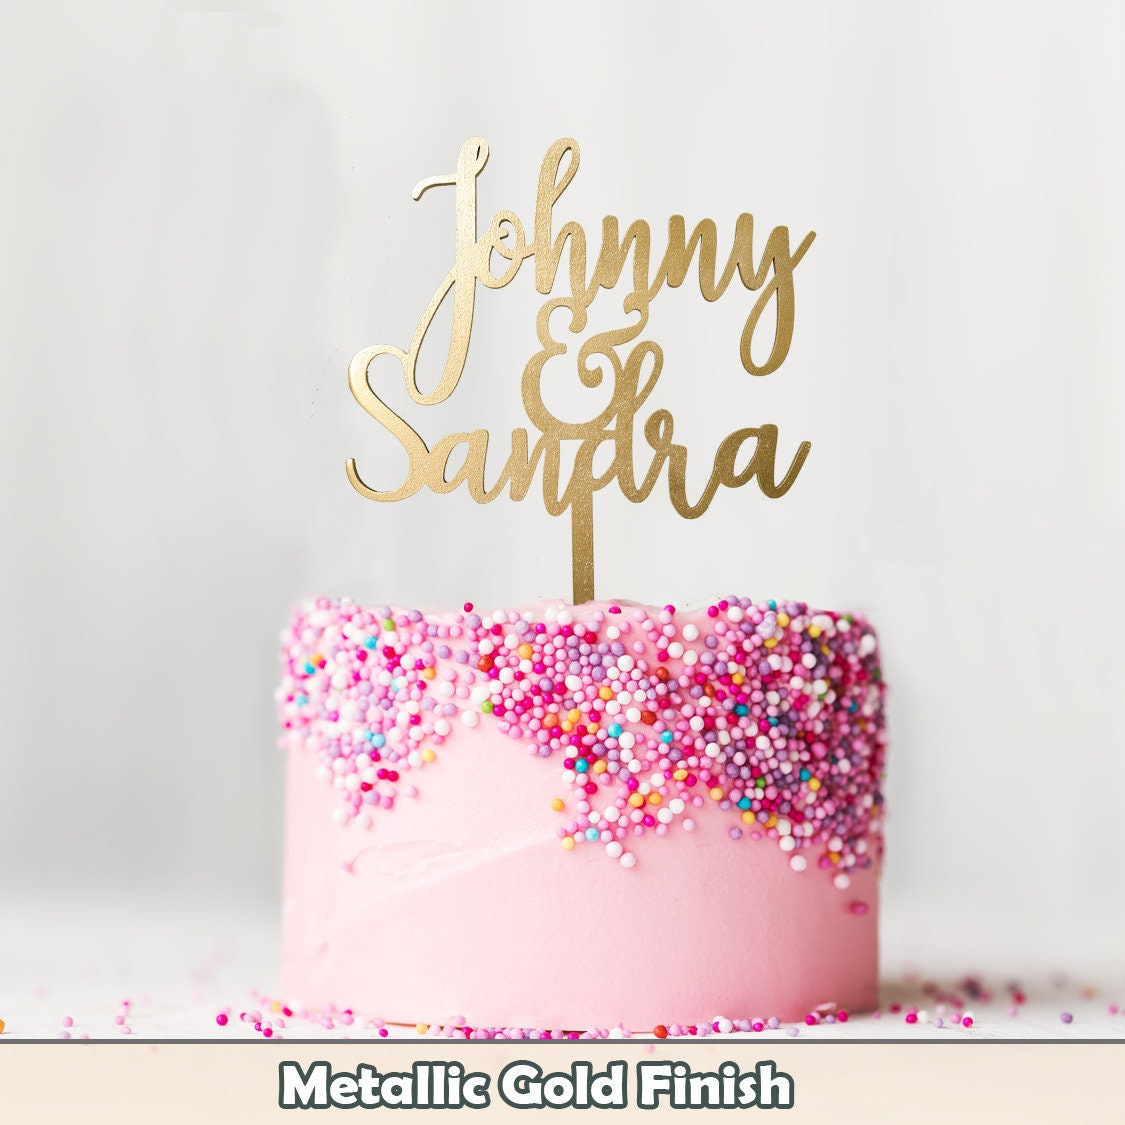 Customized Wedding Cake Topper Personalized Cake Topper for   Etsy